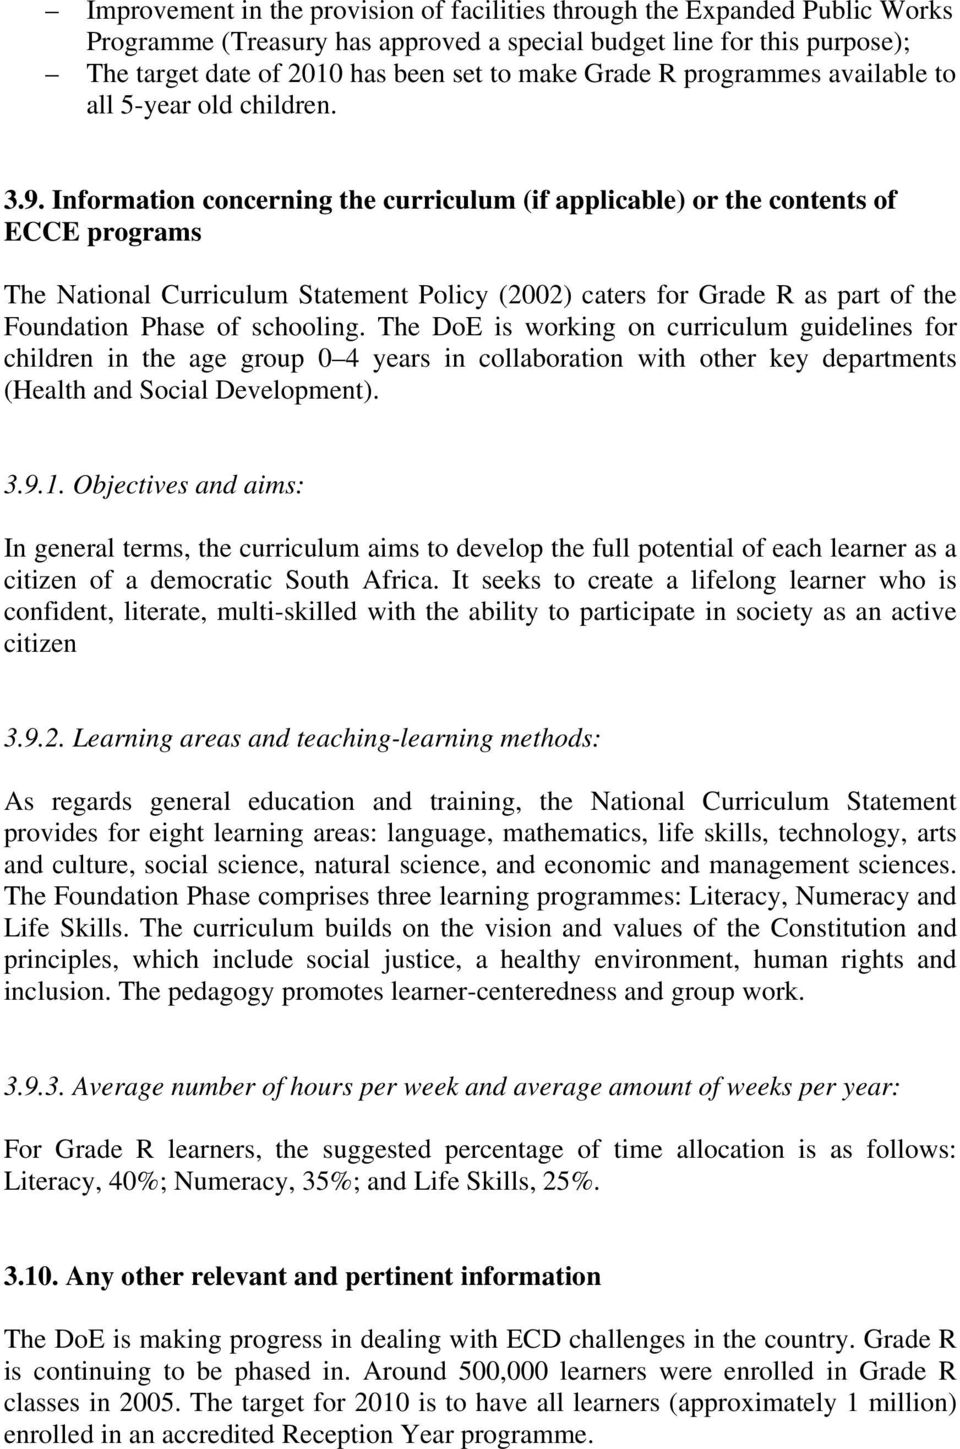 Information concerning the curriculum (if applicable) or the contents of ECCE programs The National Curriculum Statement Policy (2002) caters for Grade R as part of the Foundation Phase of schooling.